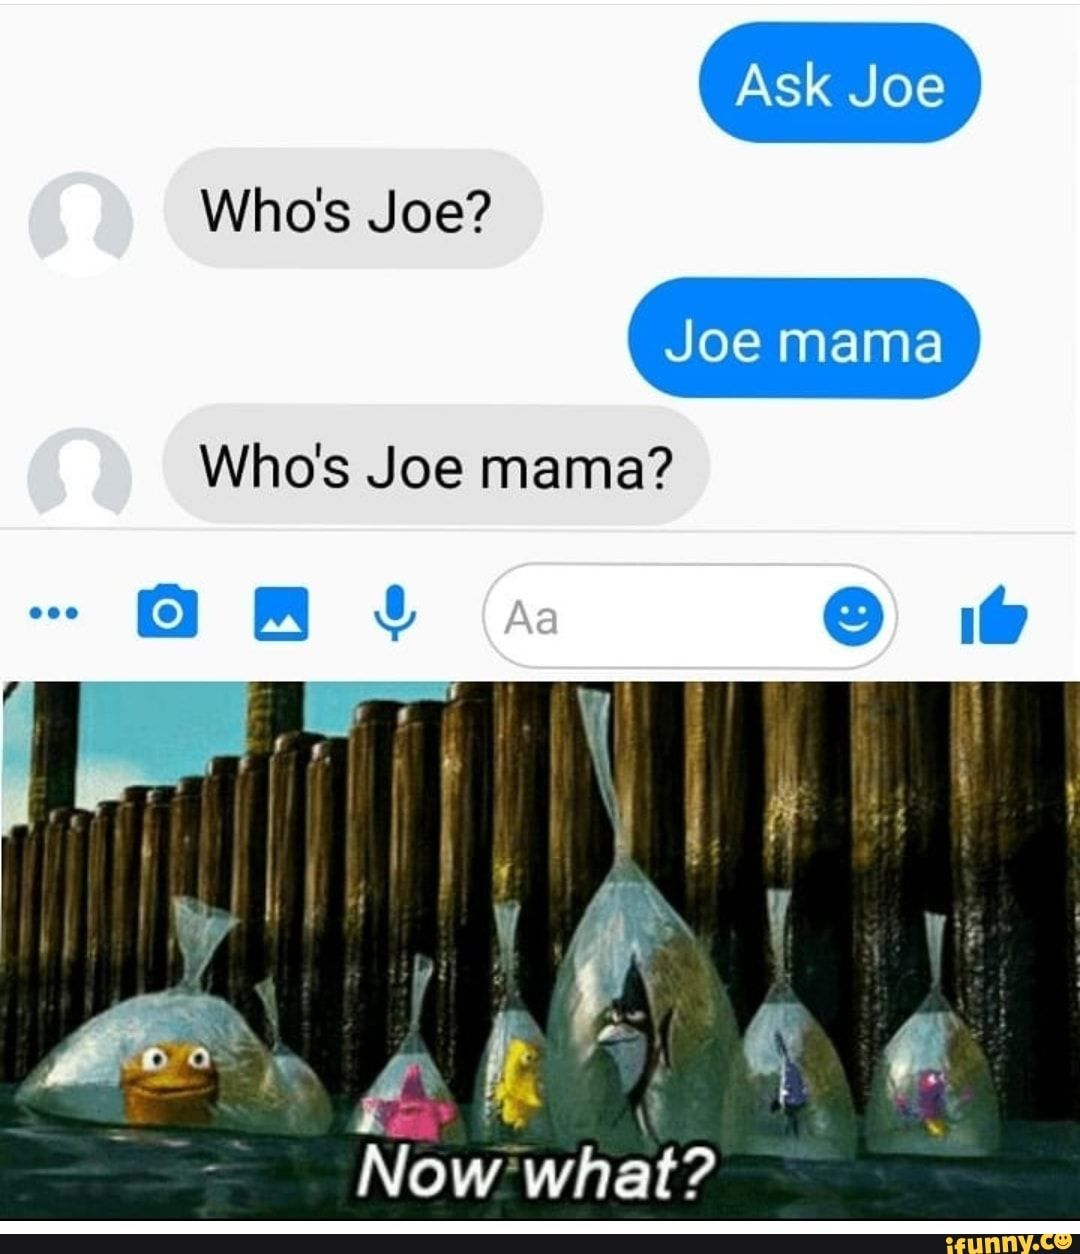 Who S Joe Mama Now What Ifunny Mama Jokes Now What What Meme Joe mama is a joke that recently took over the internet, however it's quite an old meme last week i managed to send joe mama 9a at oliana, a route that had challenged me a lot last season. who s joe mama now what ifunny